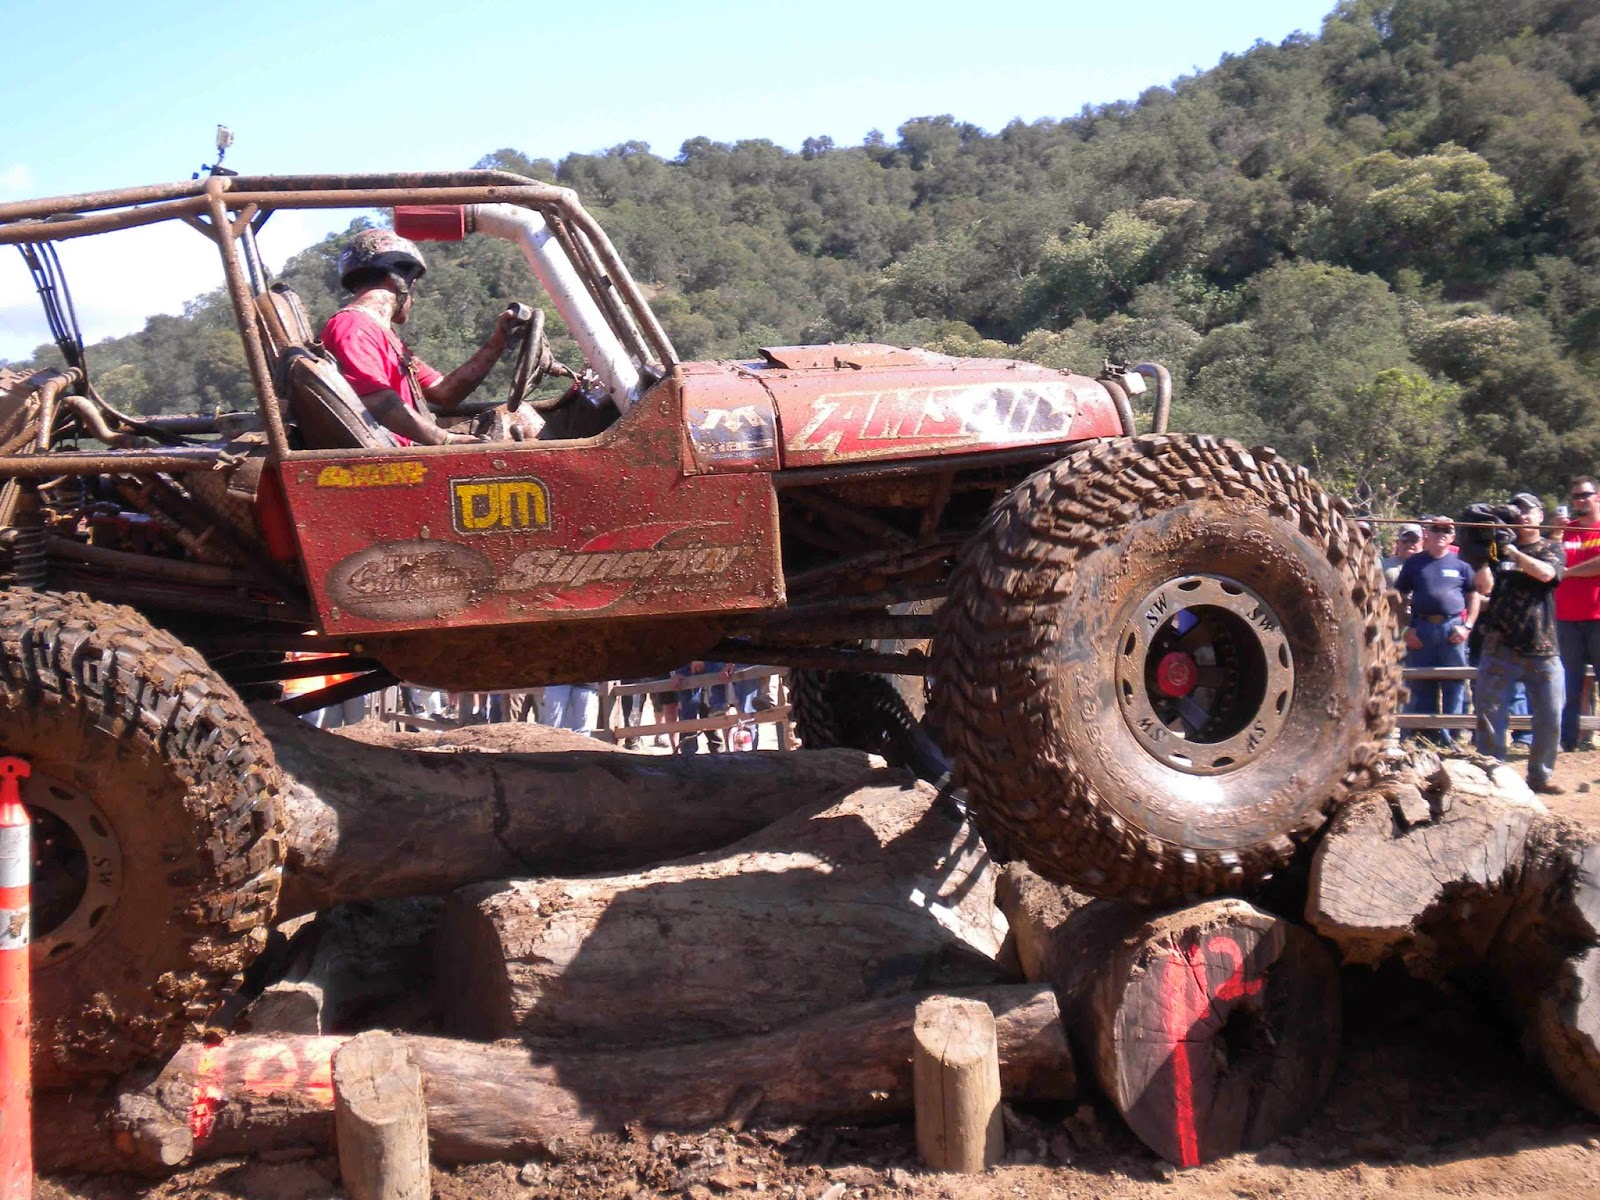 The four wheeler top truck challenge has to be one of the toughest challenges a truck can experience and the most fun a driver can have this side of